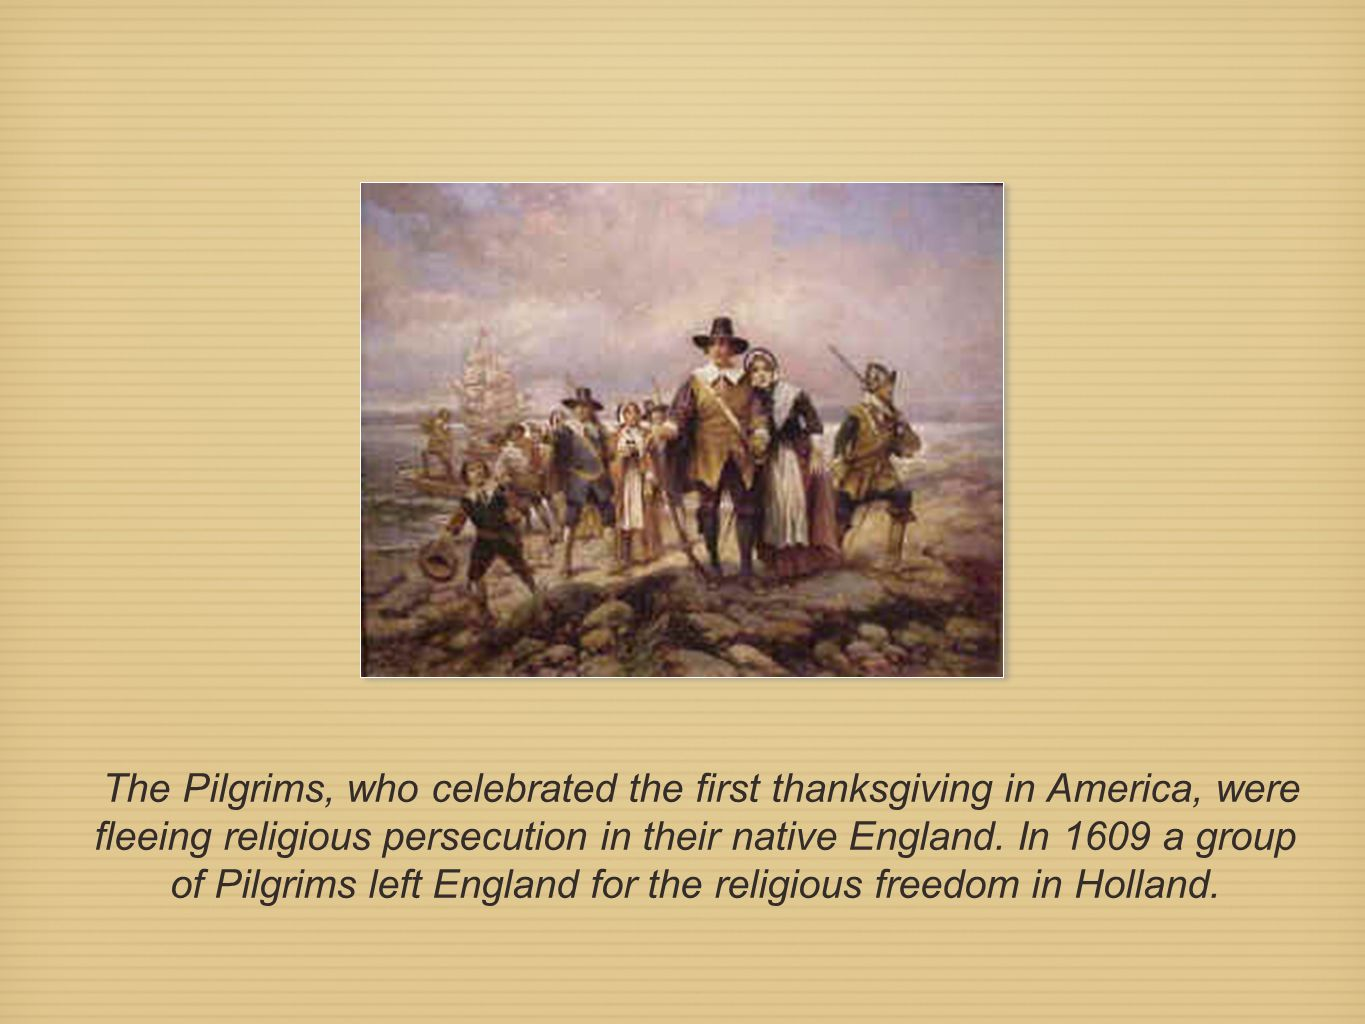 The Pilgrims, who celebrated the first thanksgiving in America, were fleeing religious persecution in their native England.